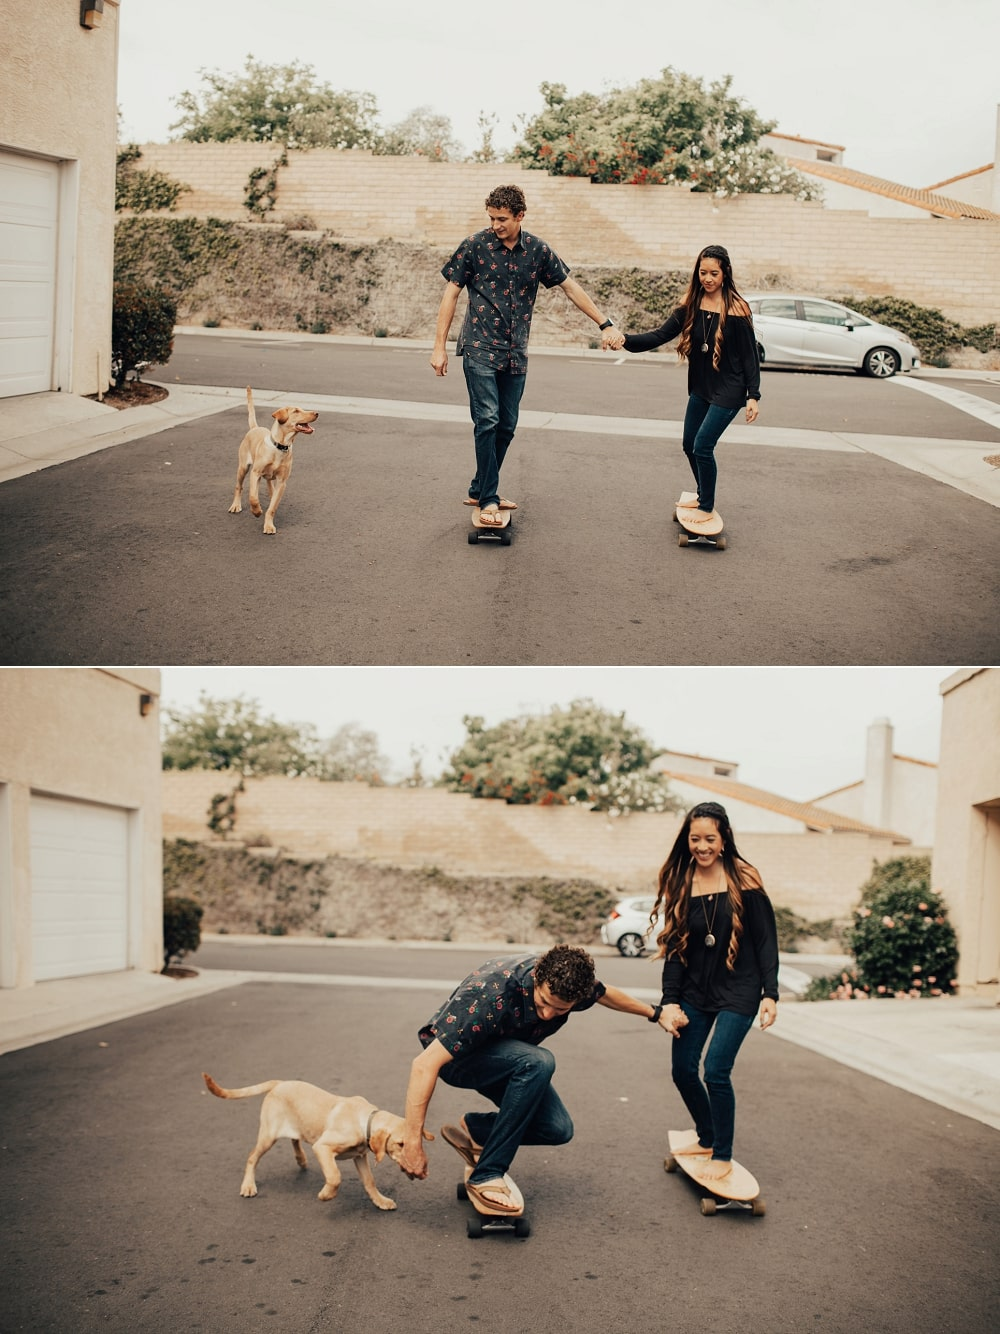 skateboarding with puppy